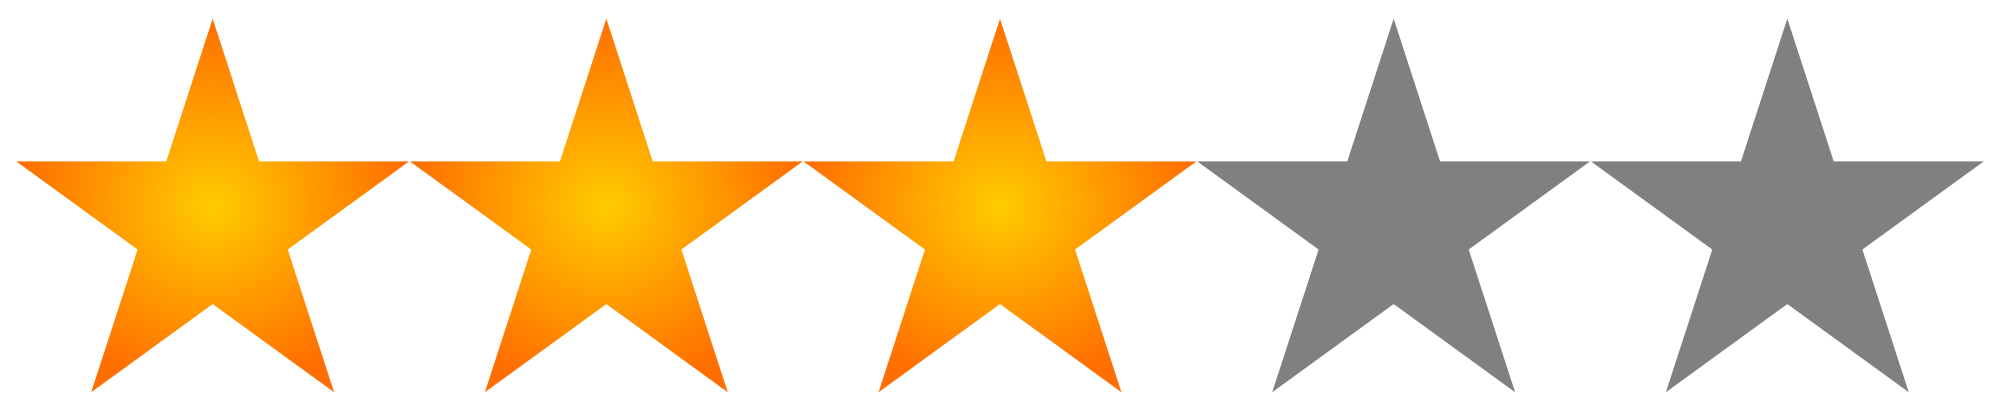 3 star png